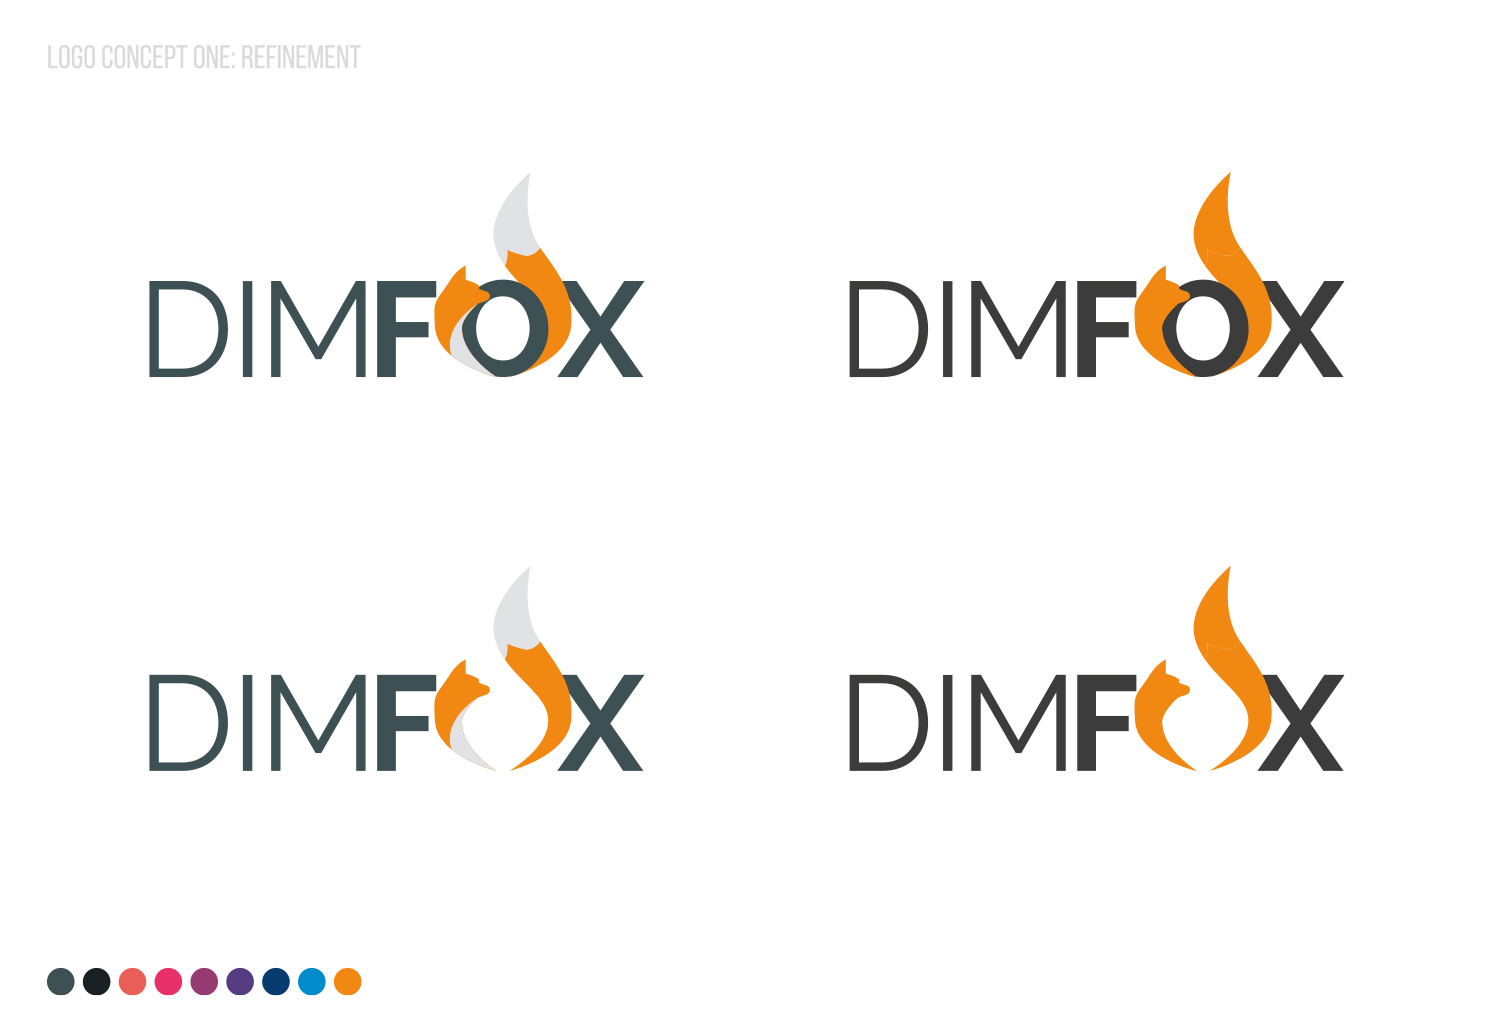 DIMFOX Logo Design -  Unused Concept 1